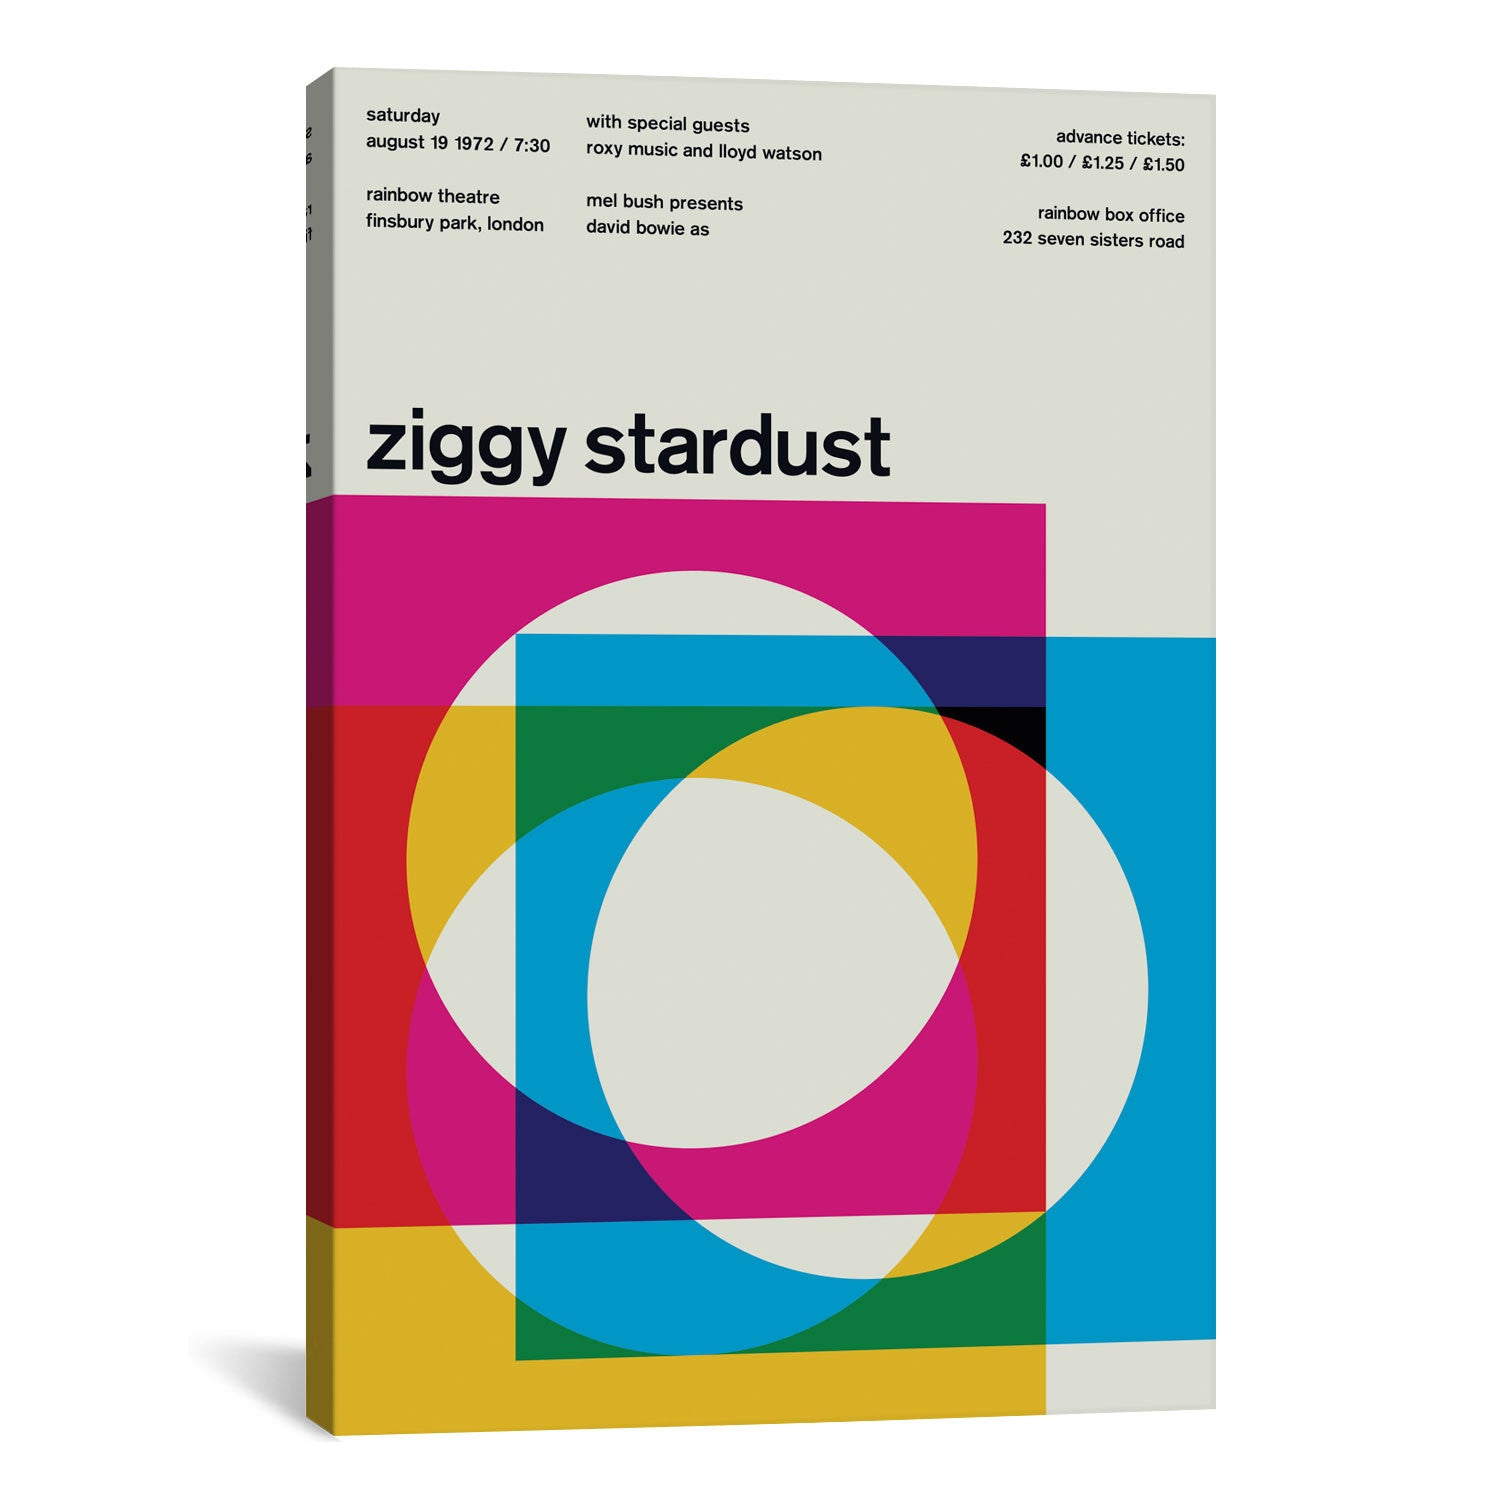 Swissted ZIGGY STARDUST AT RAINBOW THEATRE: August 19th, 1972